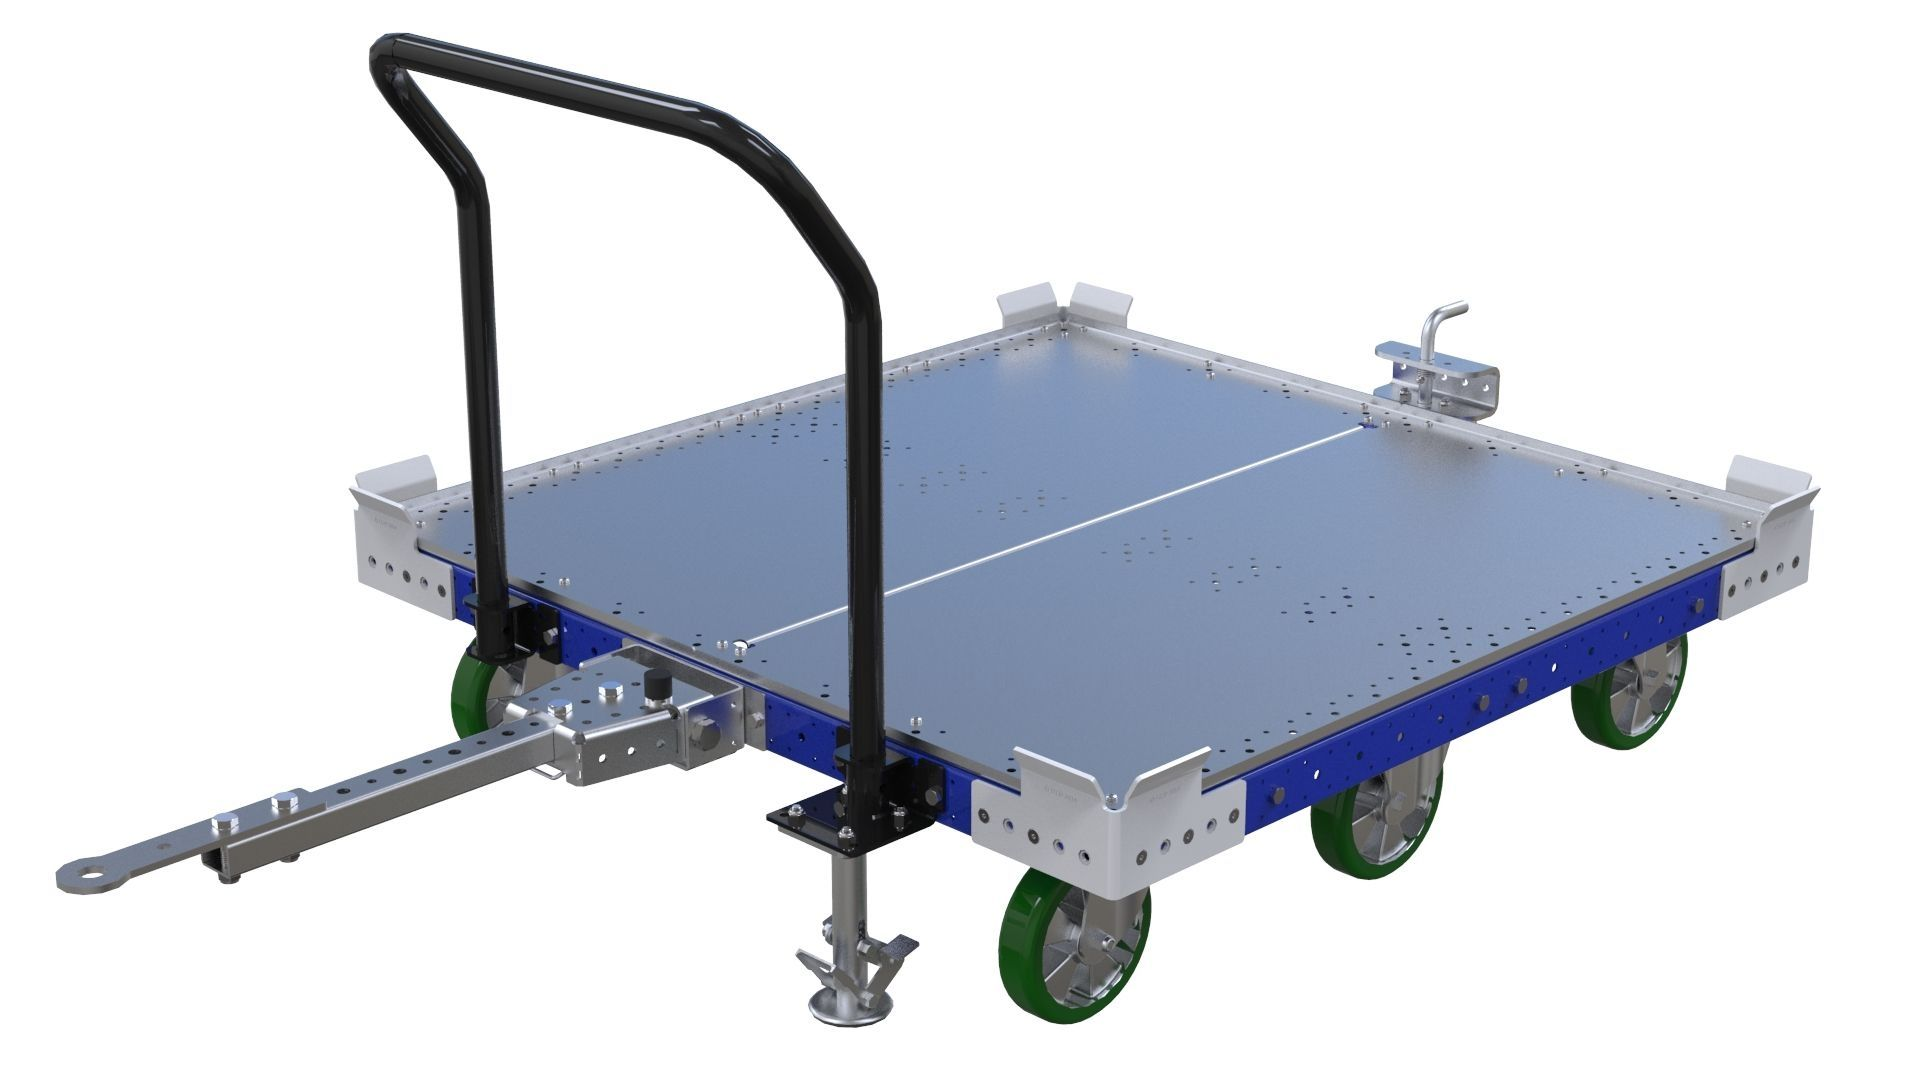 50 x 50 inch (1260 mm x 1260 mm) tugger cart with flat deck